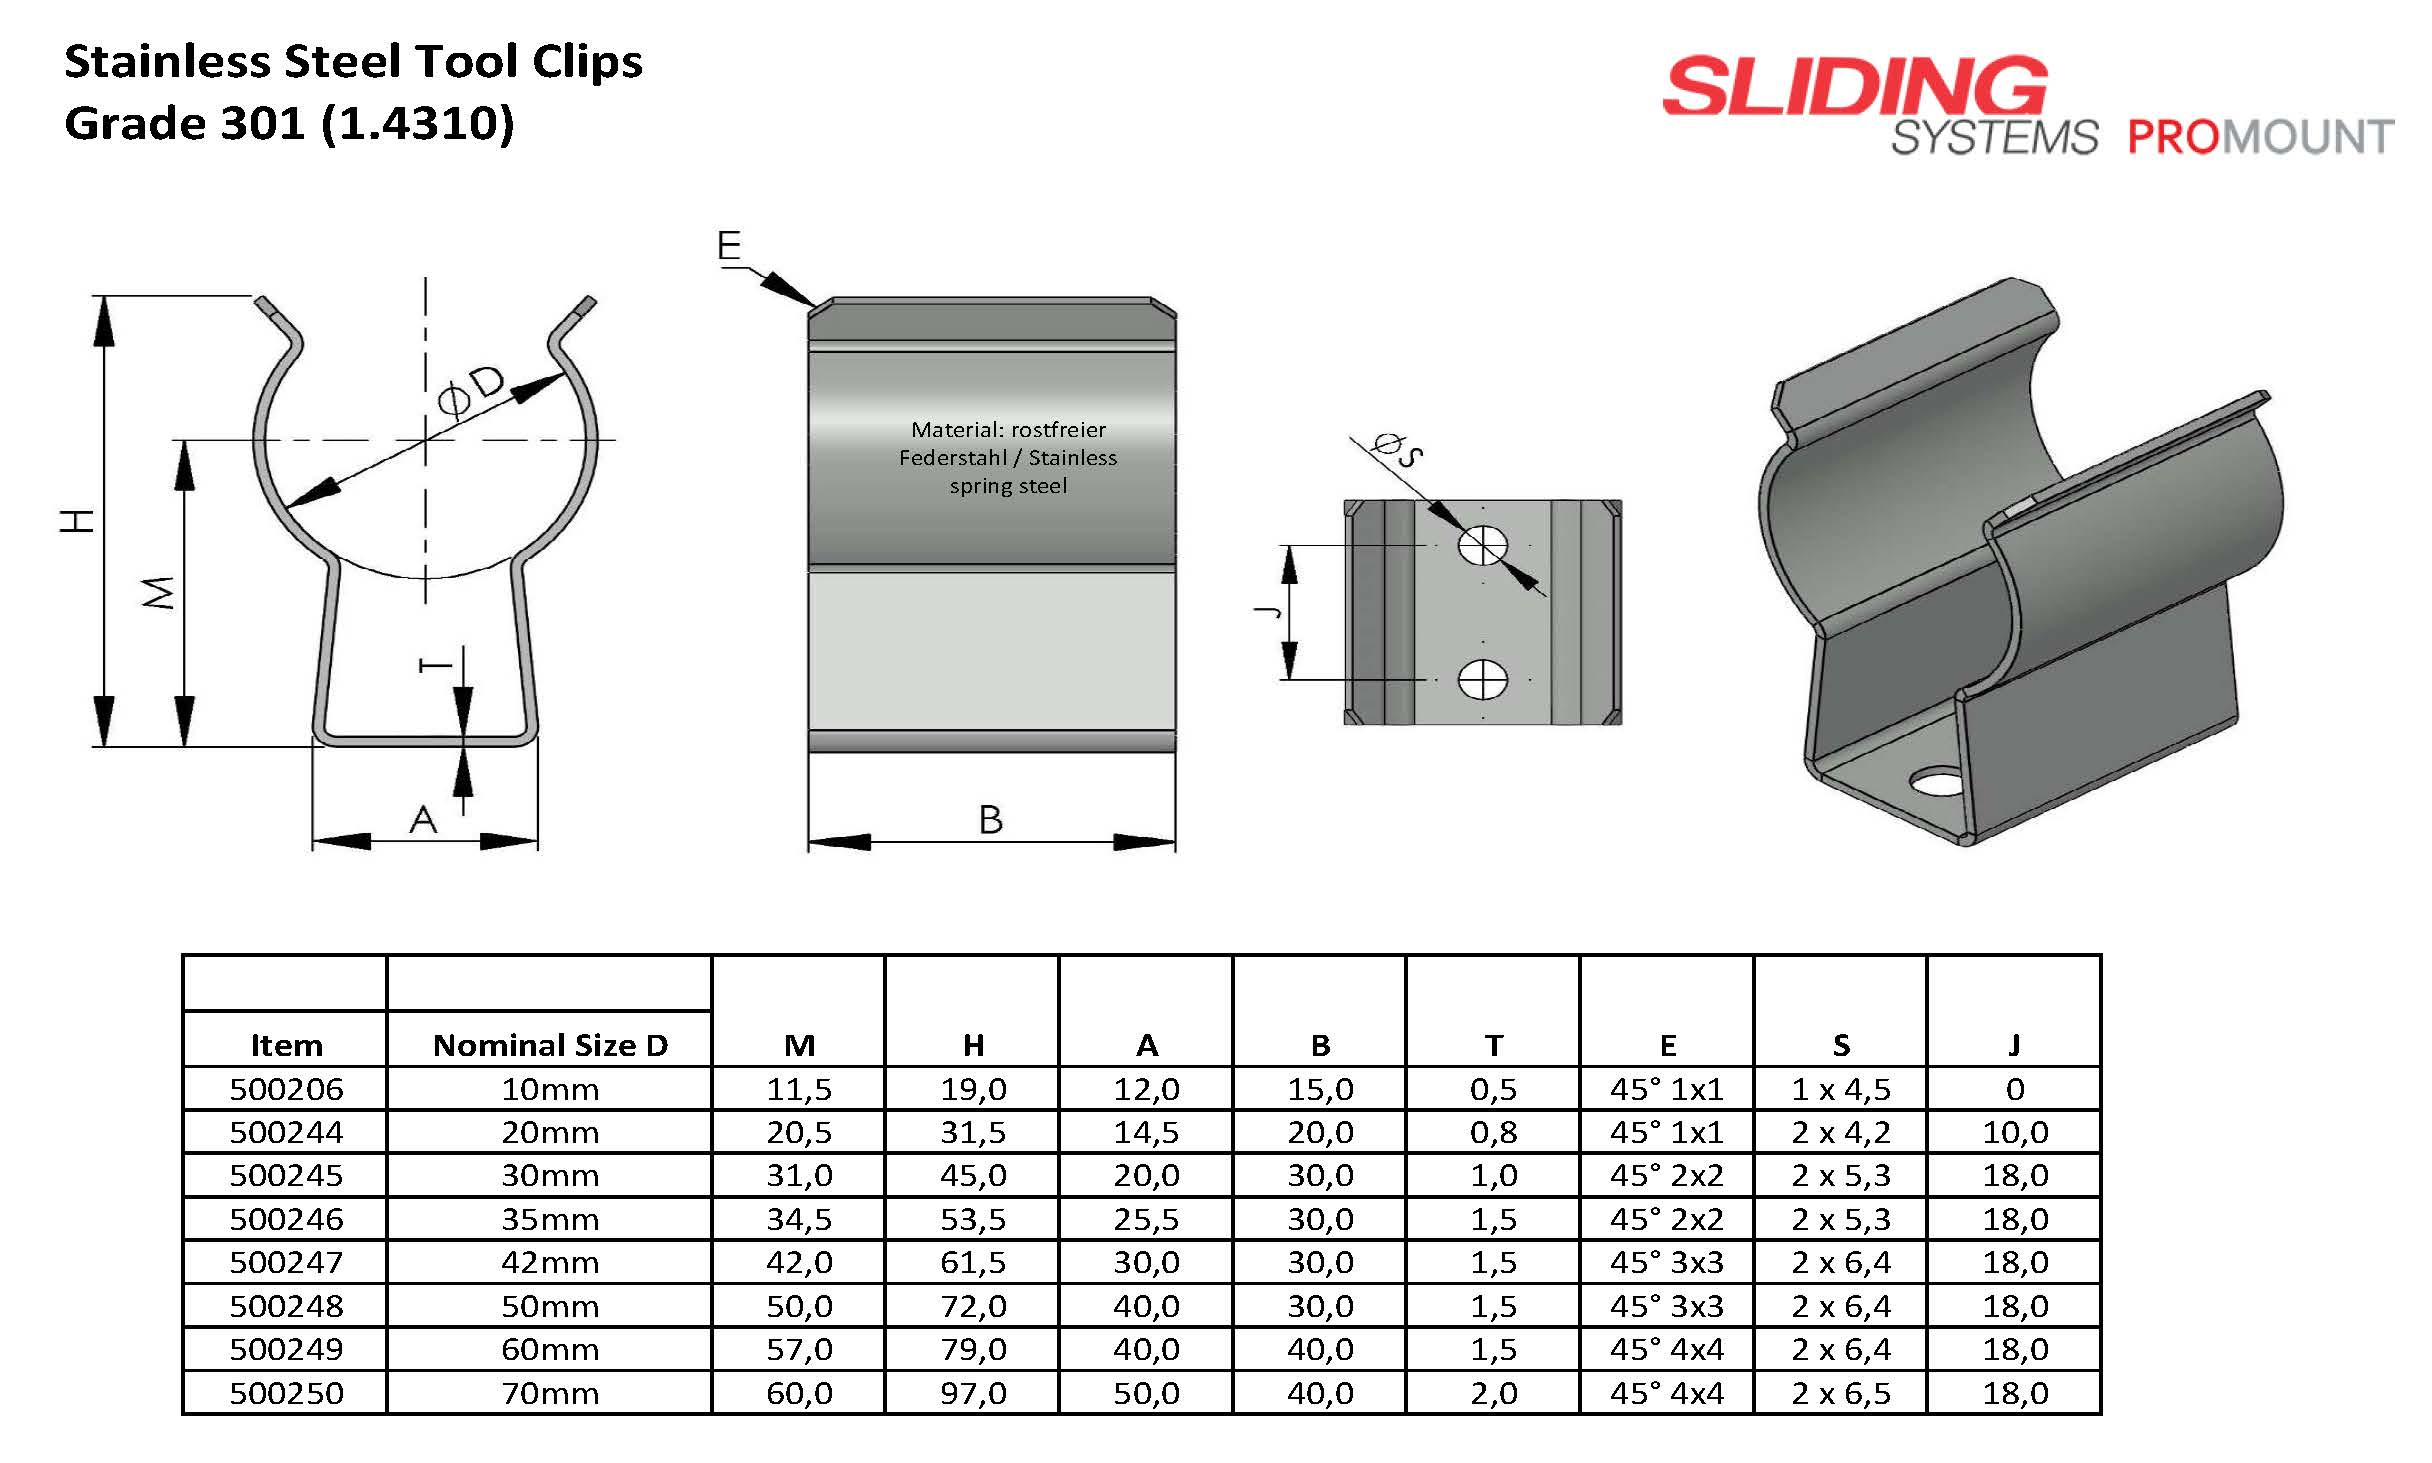 stainless-steel-tool-clips.jpg